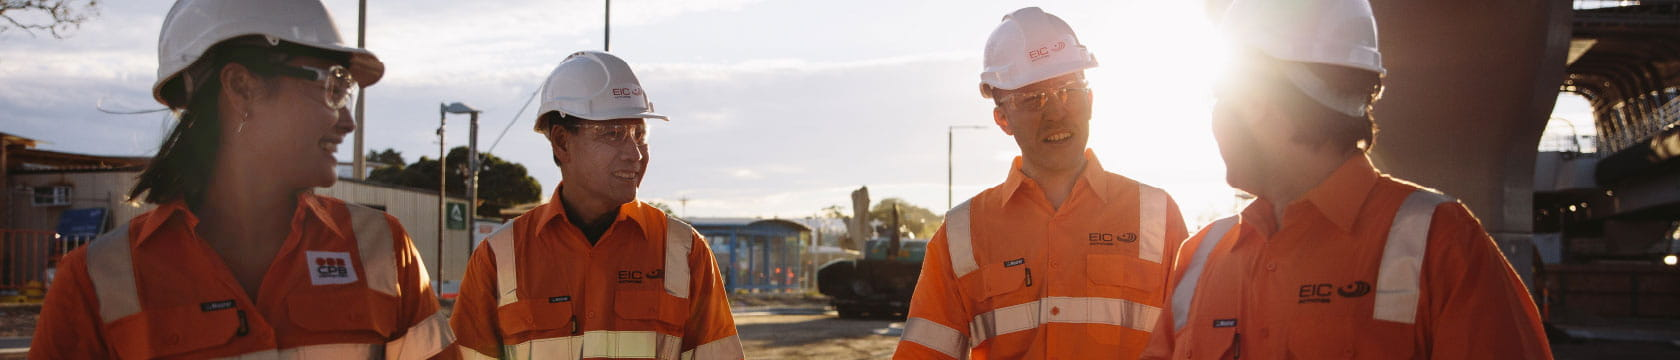 1 female and 3 male workers talking with sunsetting in background